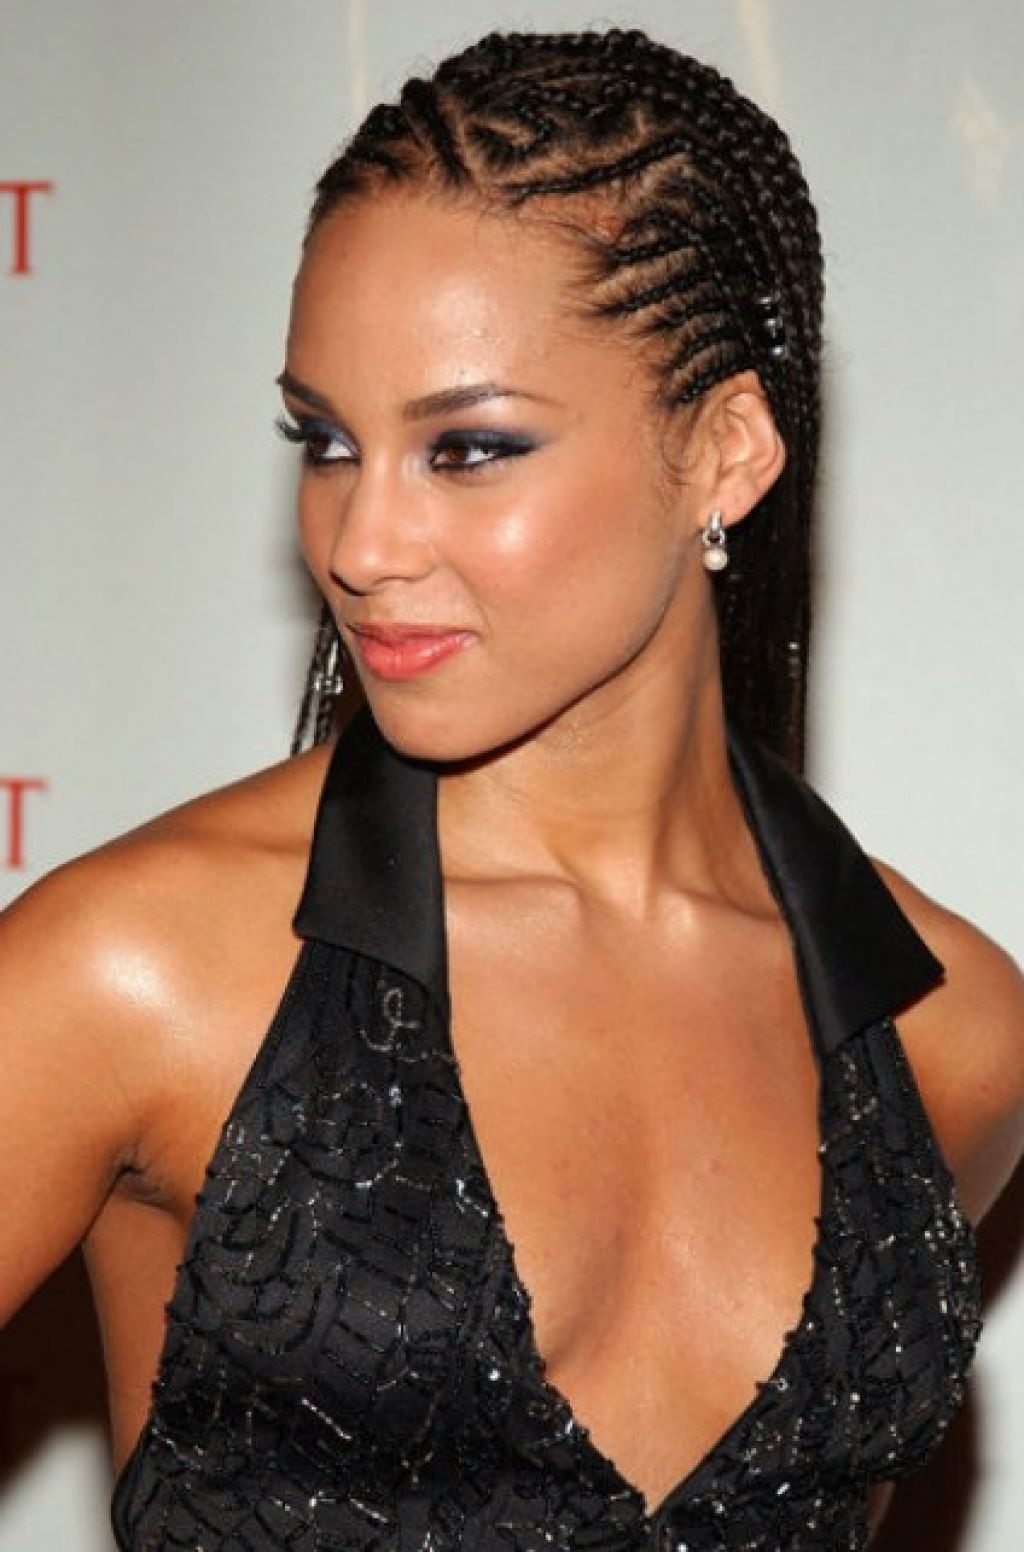 french braid hairstyles on natural hair 2015, women styles